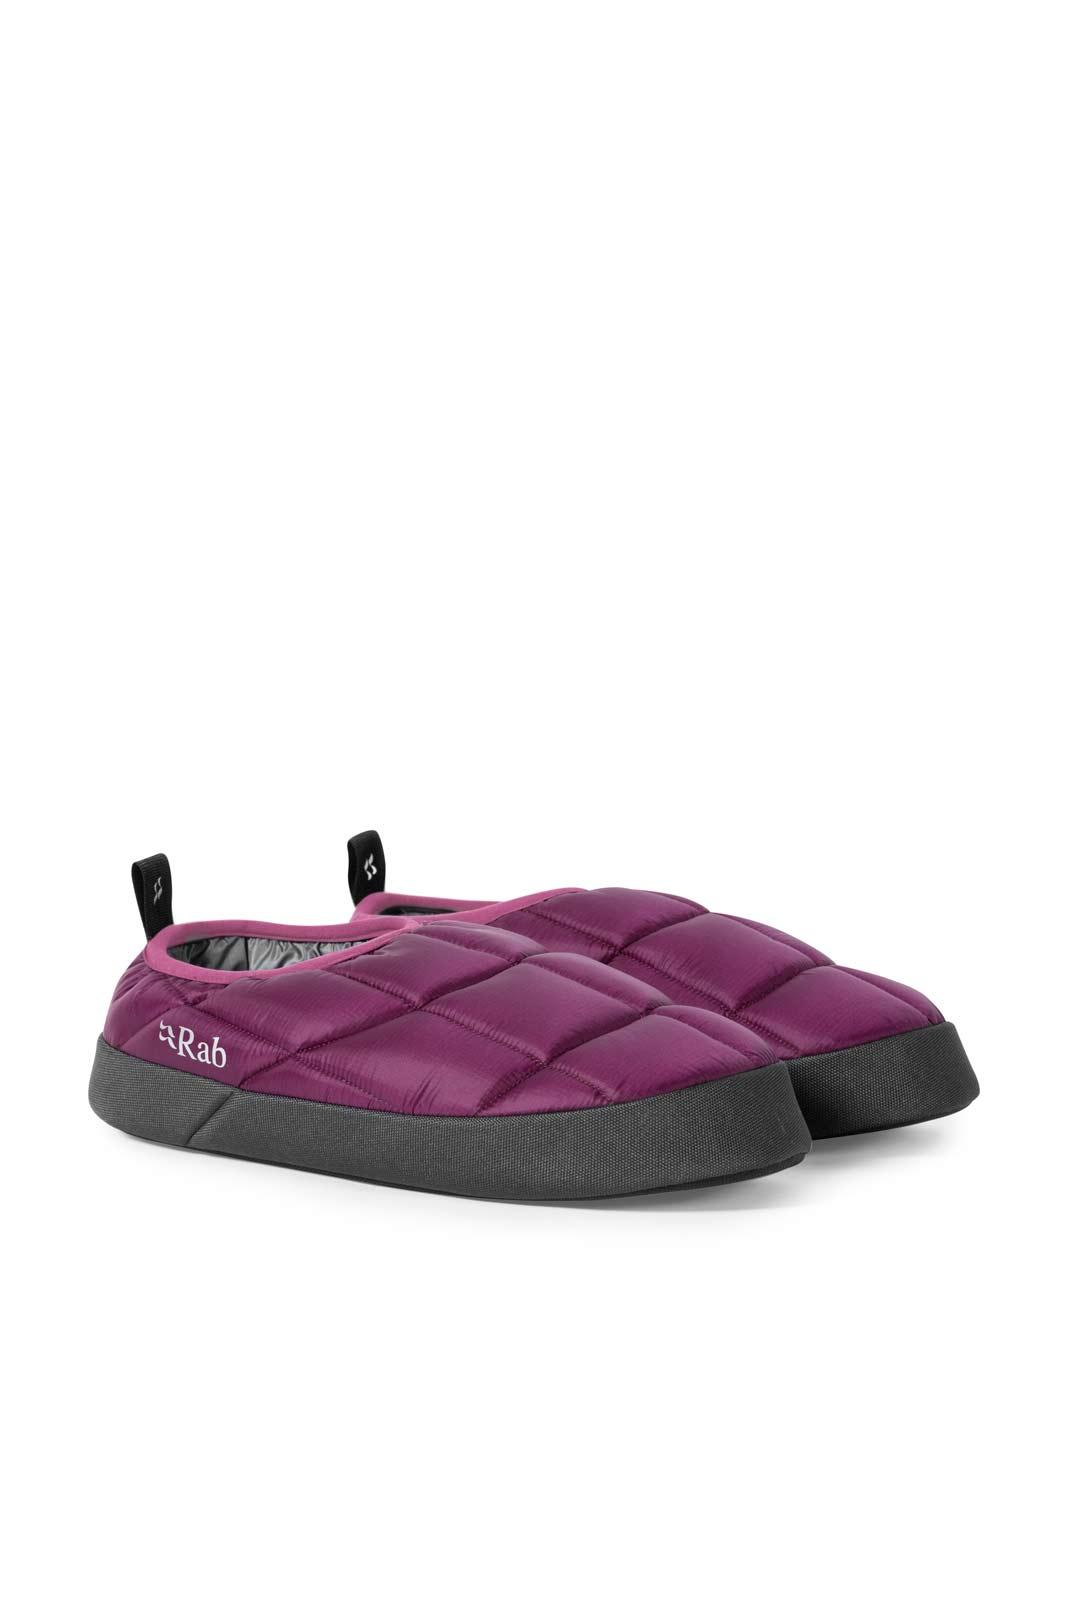 hut_slipper_qah-25_berry.jpg